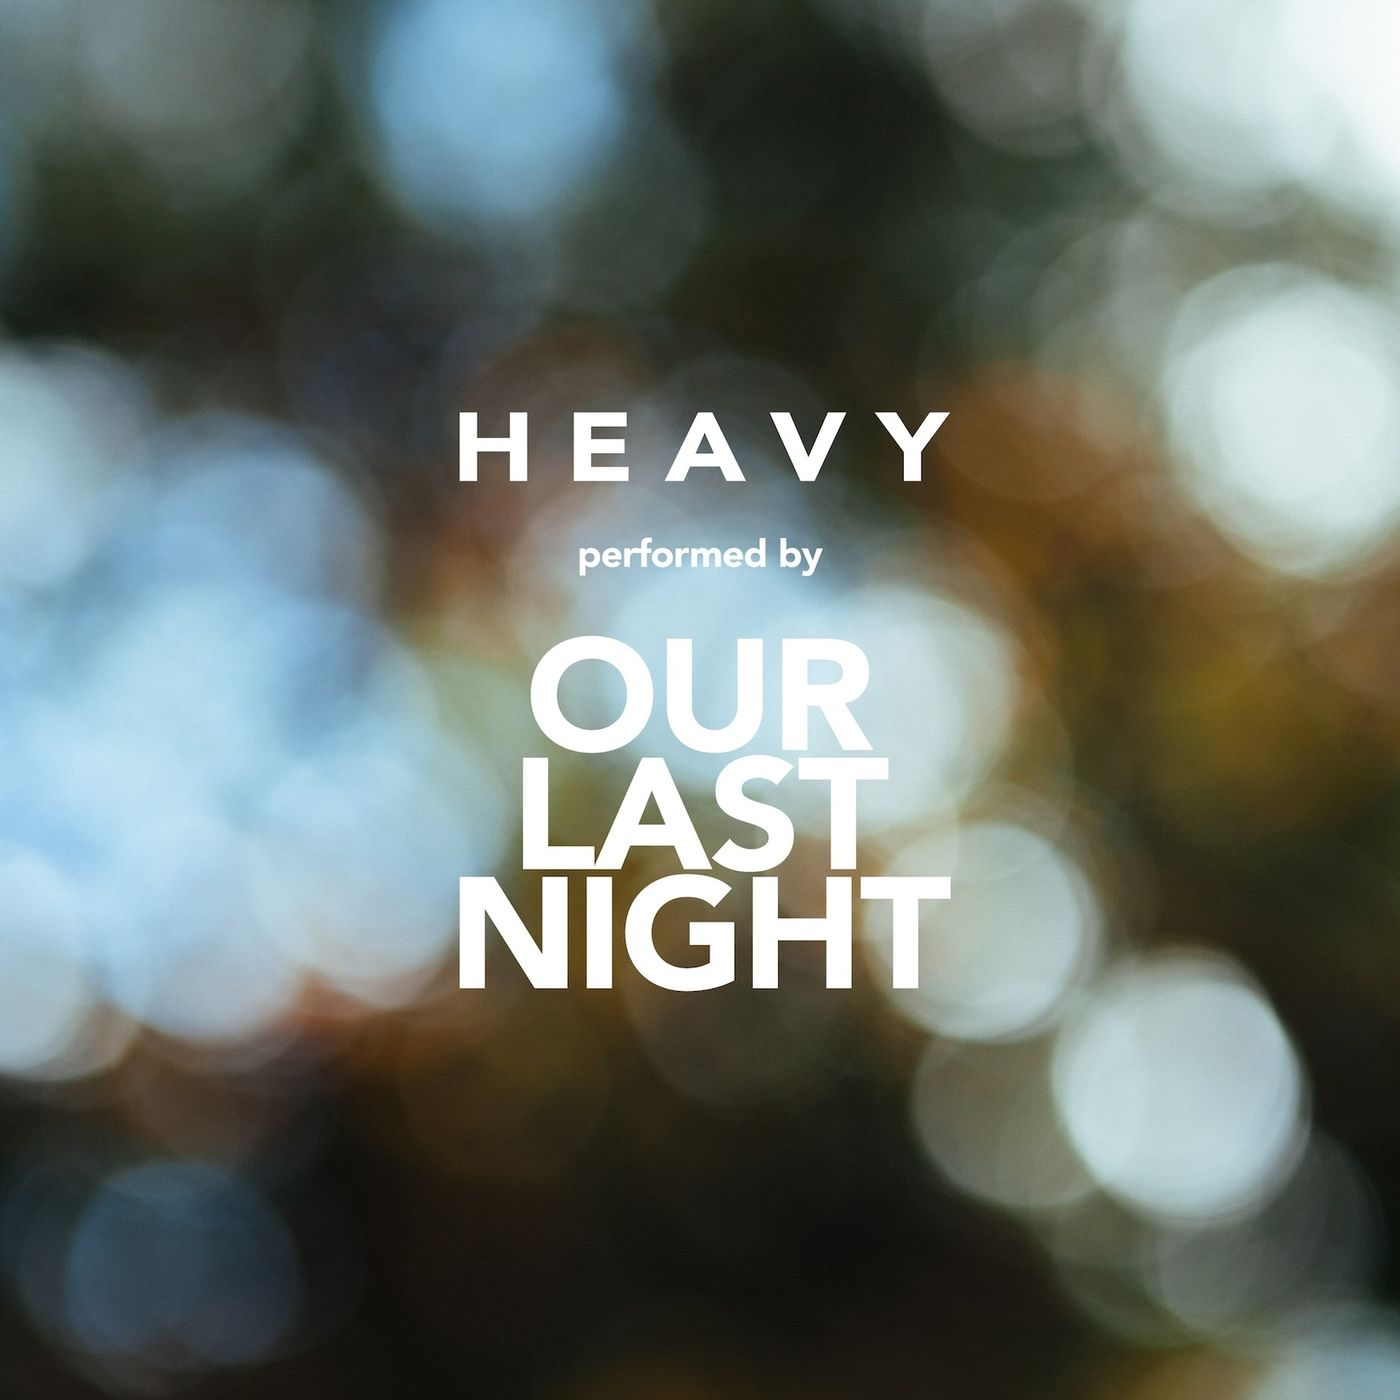 Our Last Night - Heavy [Linkin Park Cover] (2017)